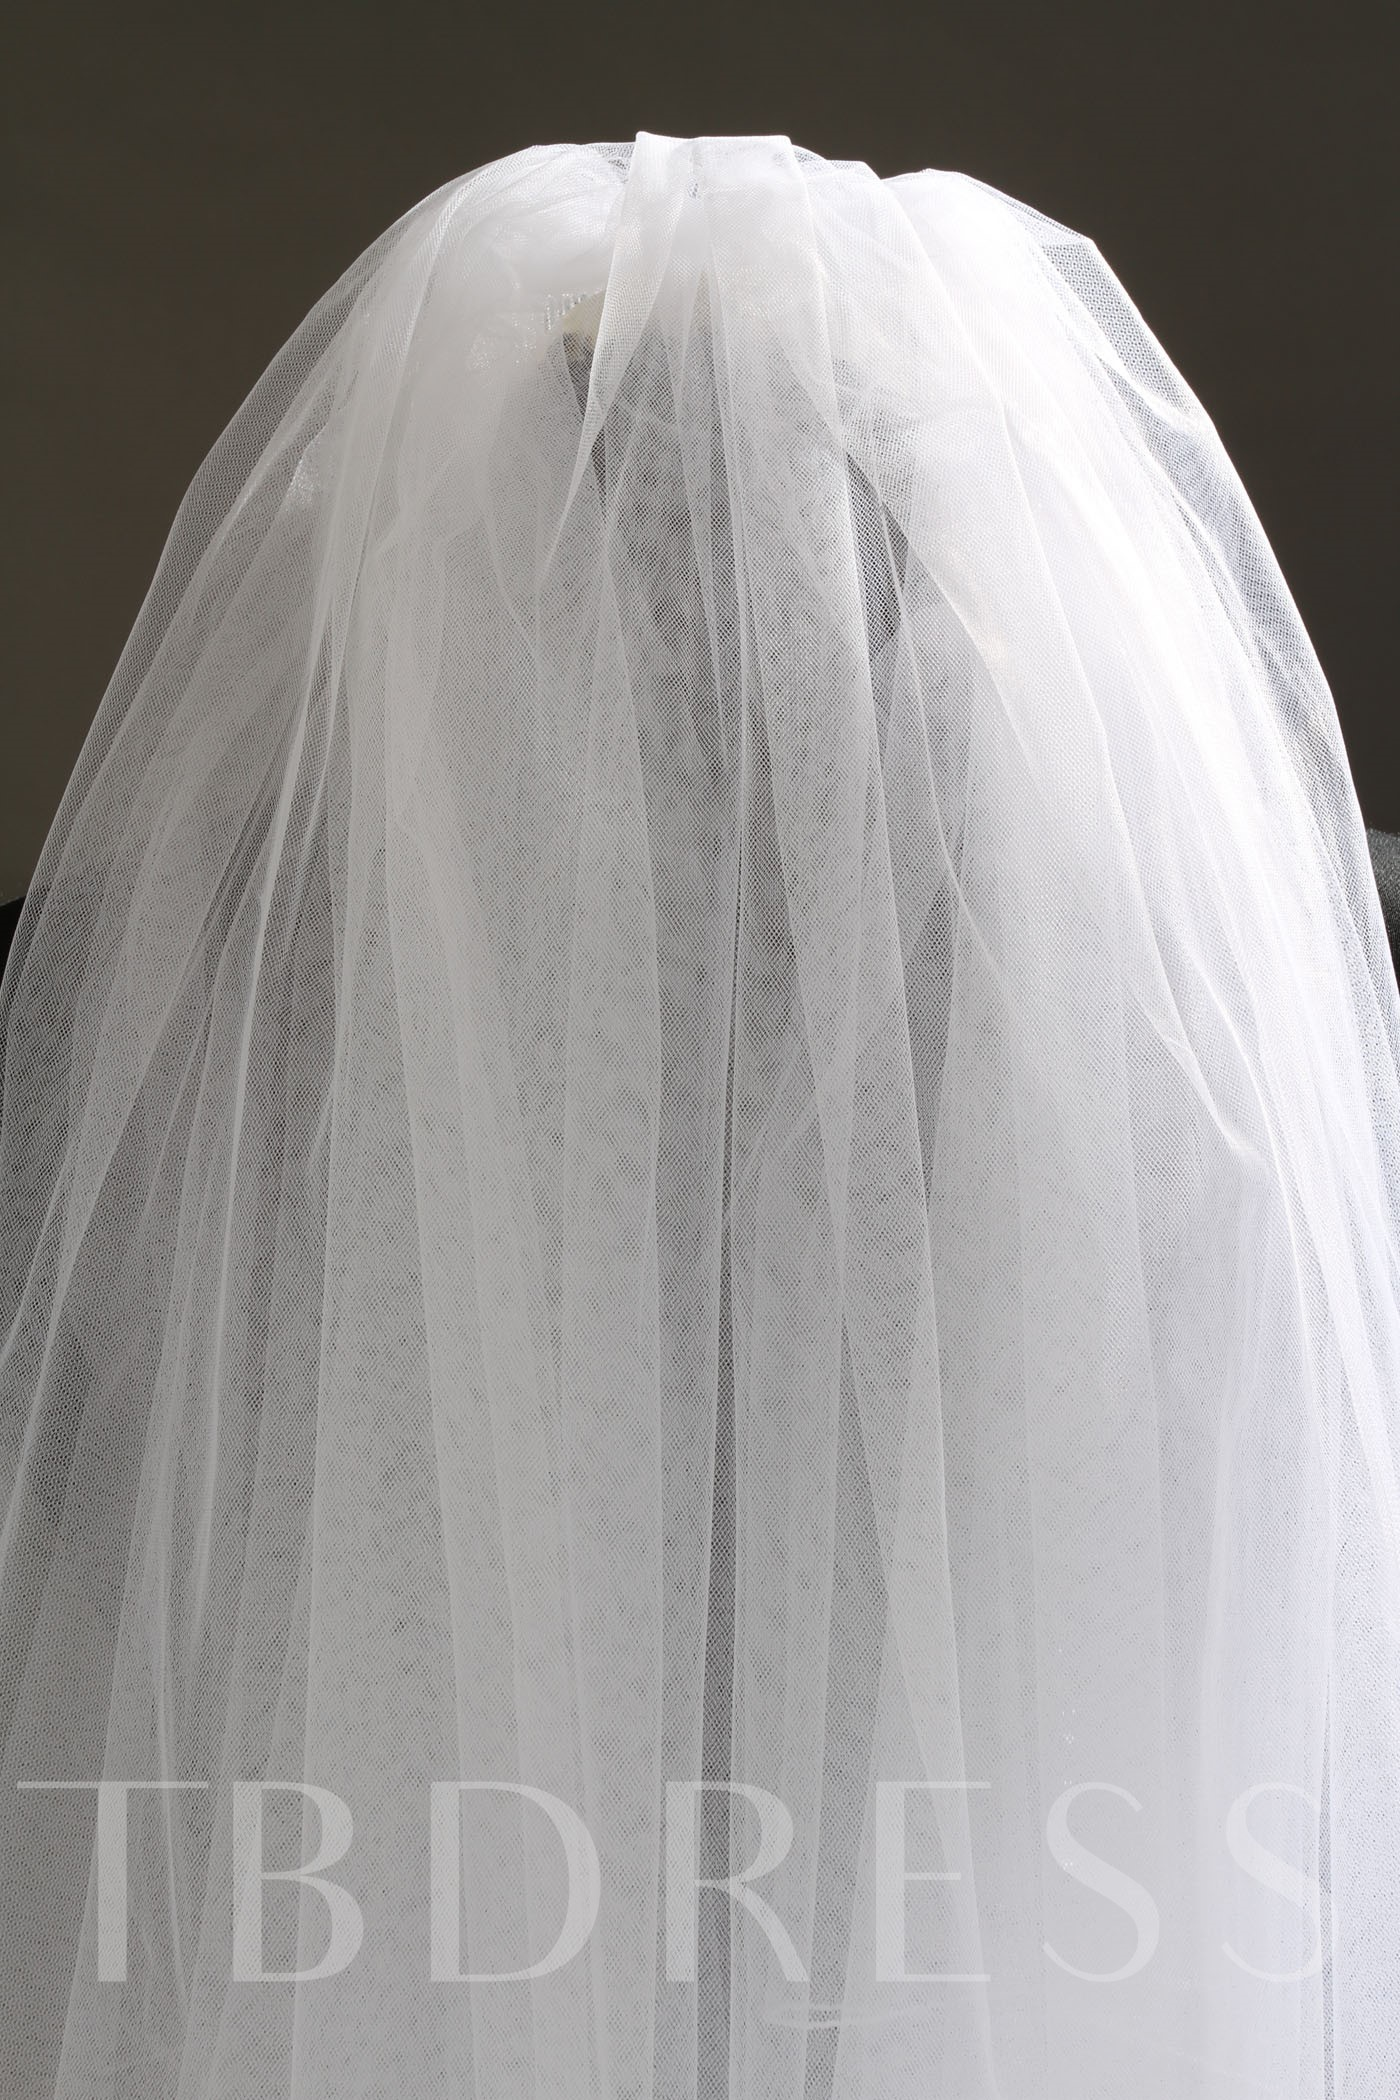 2 Layer Fingertip White Tull Wedding Bridal Veils